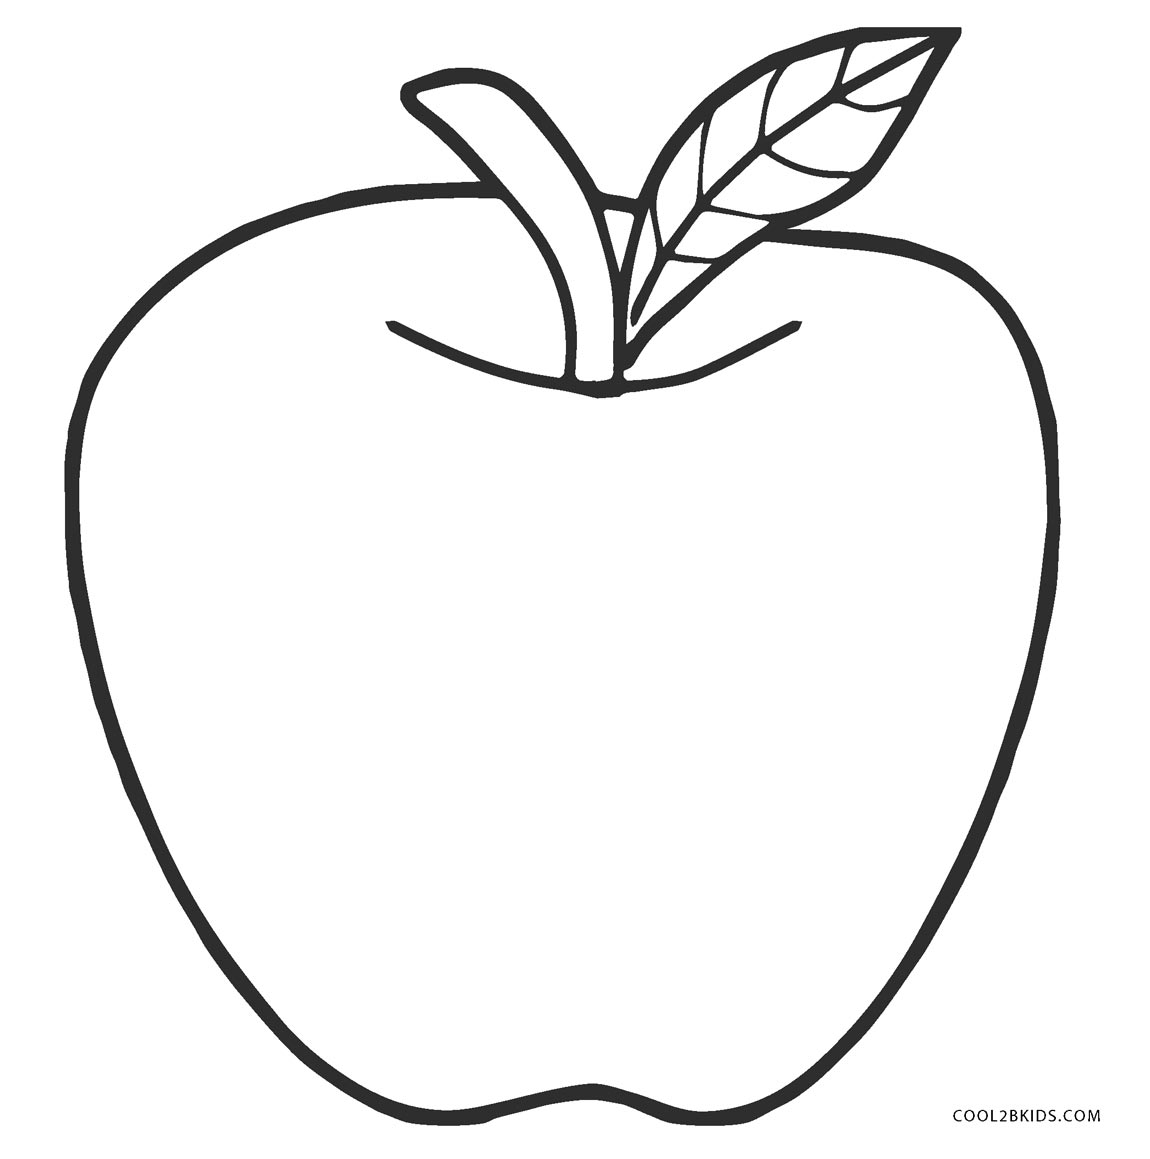 coloring pages apple apple core coloring page at getcoloringscom free apple pages coloring